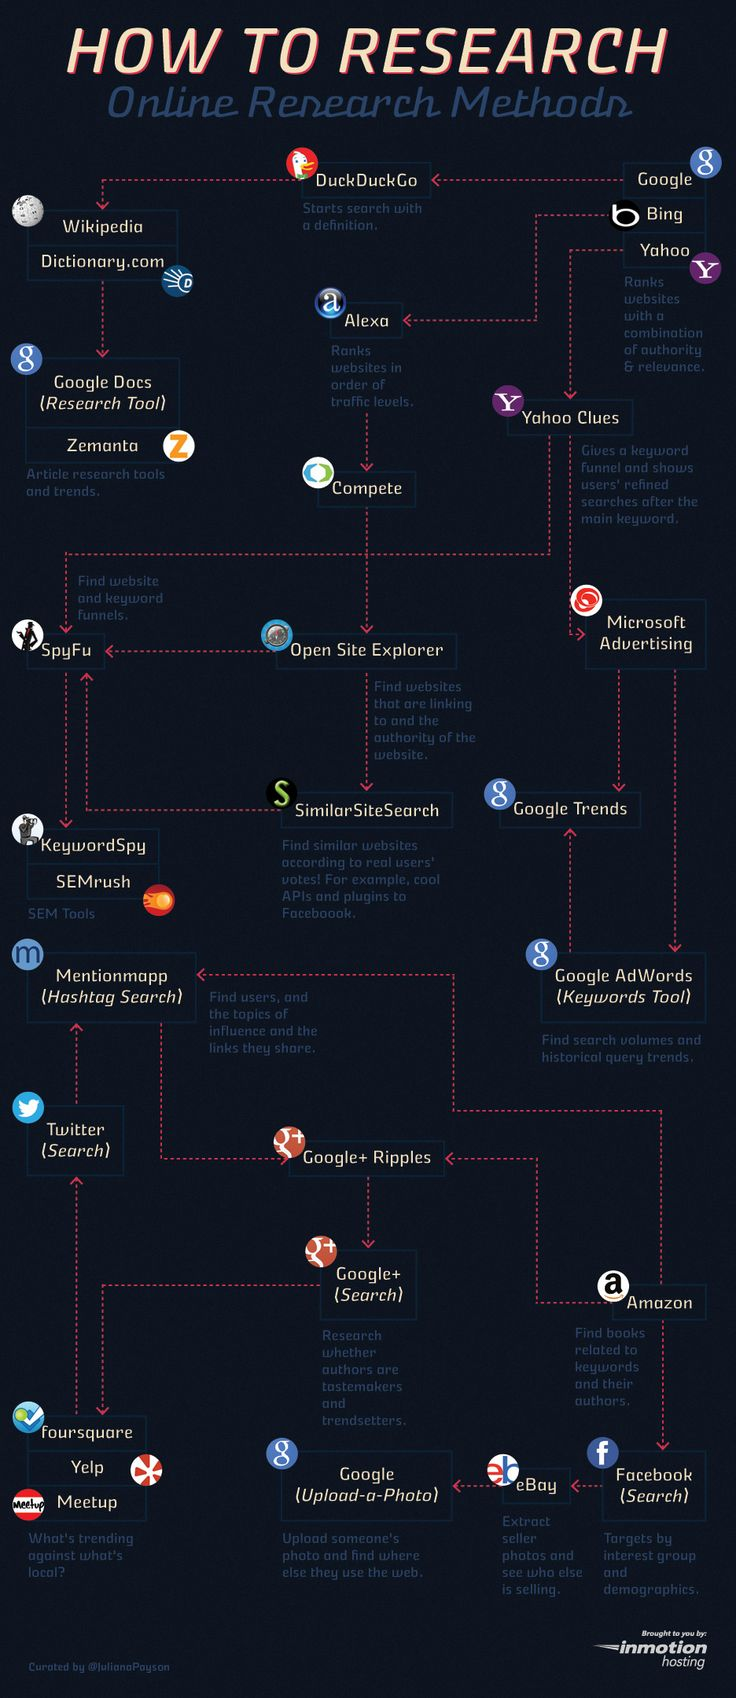 Want to know how to perform a research online? In this infographic you'll find several internet tools that'll make your research process a lot easier.